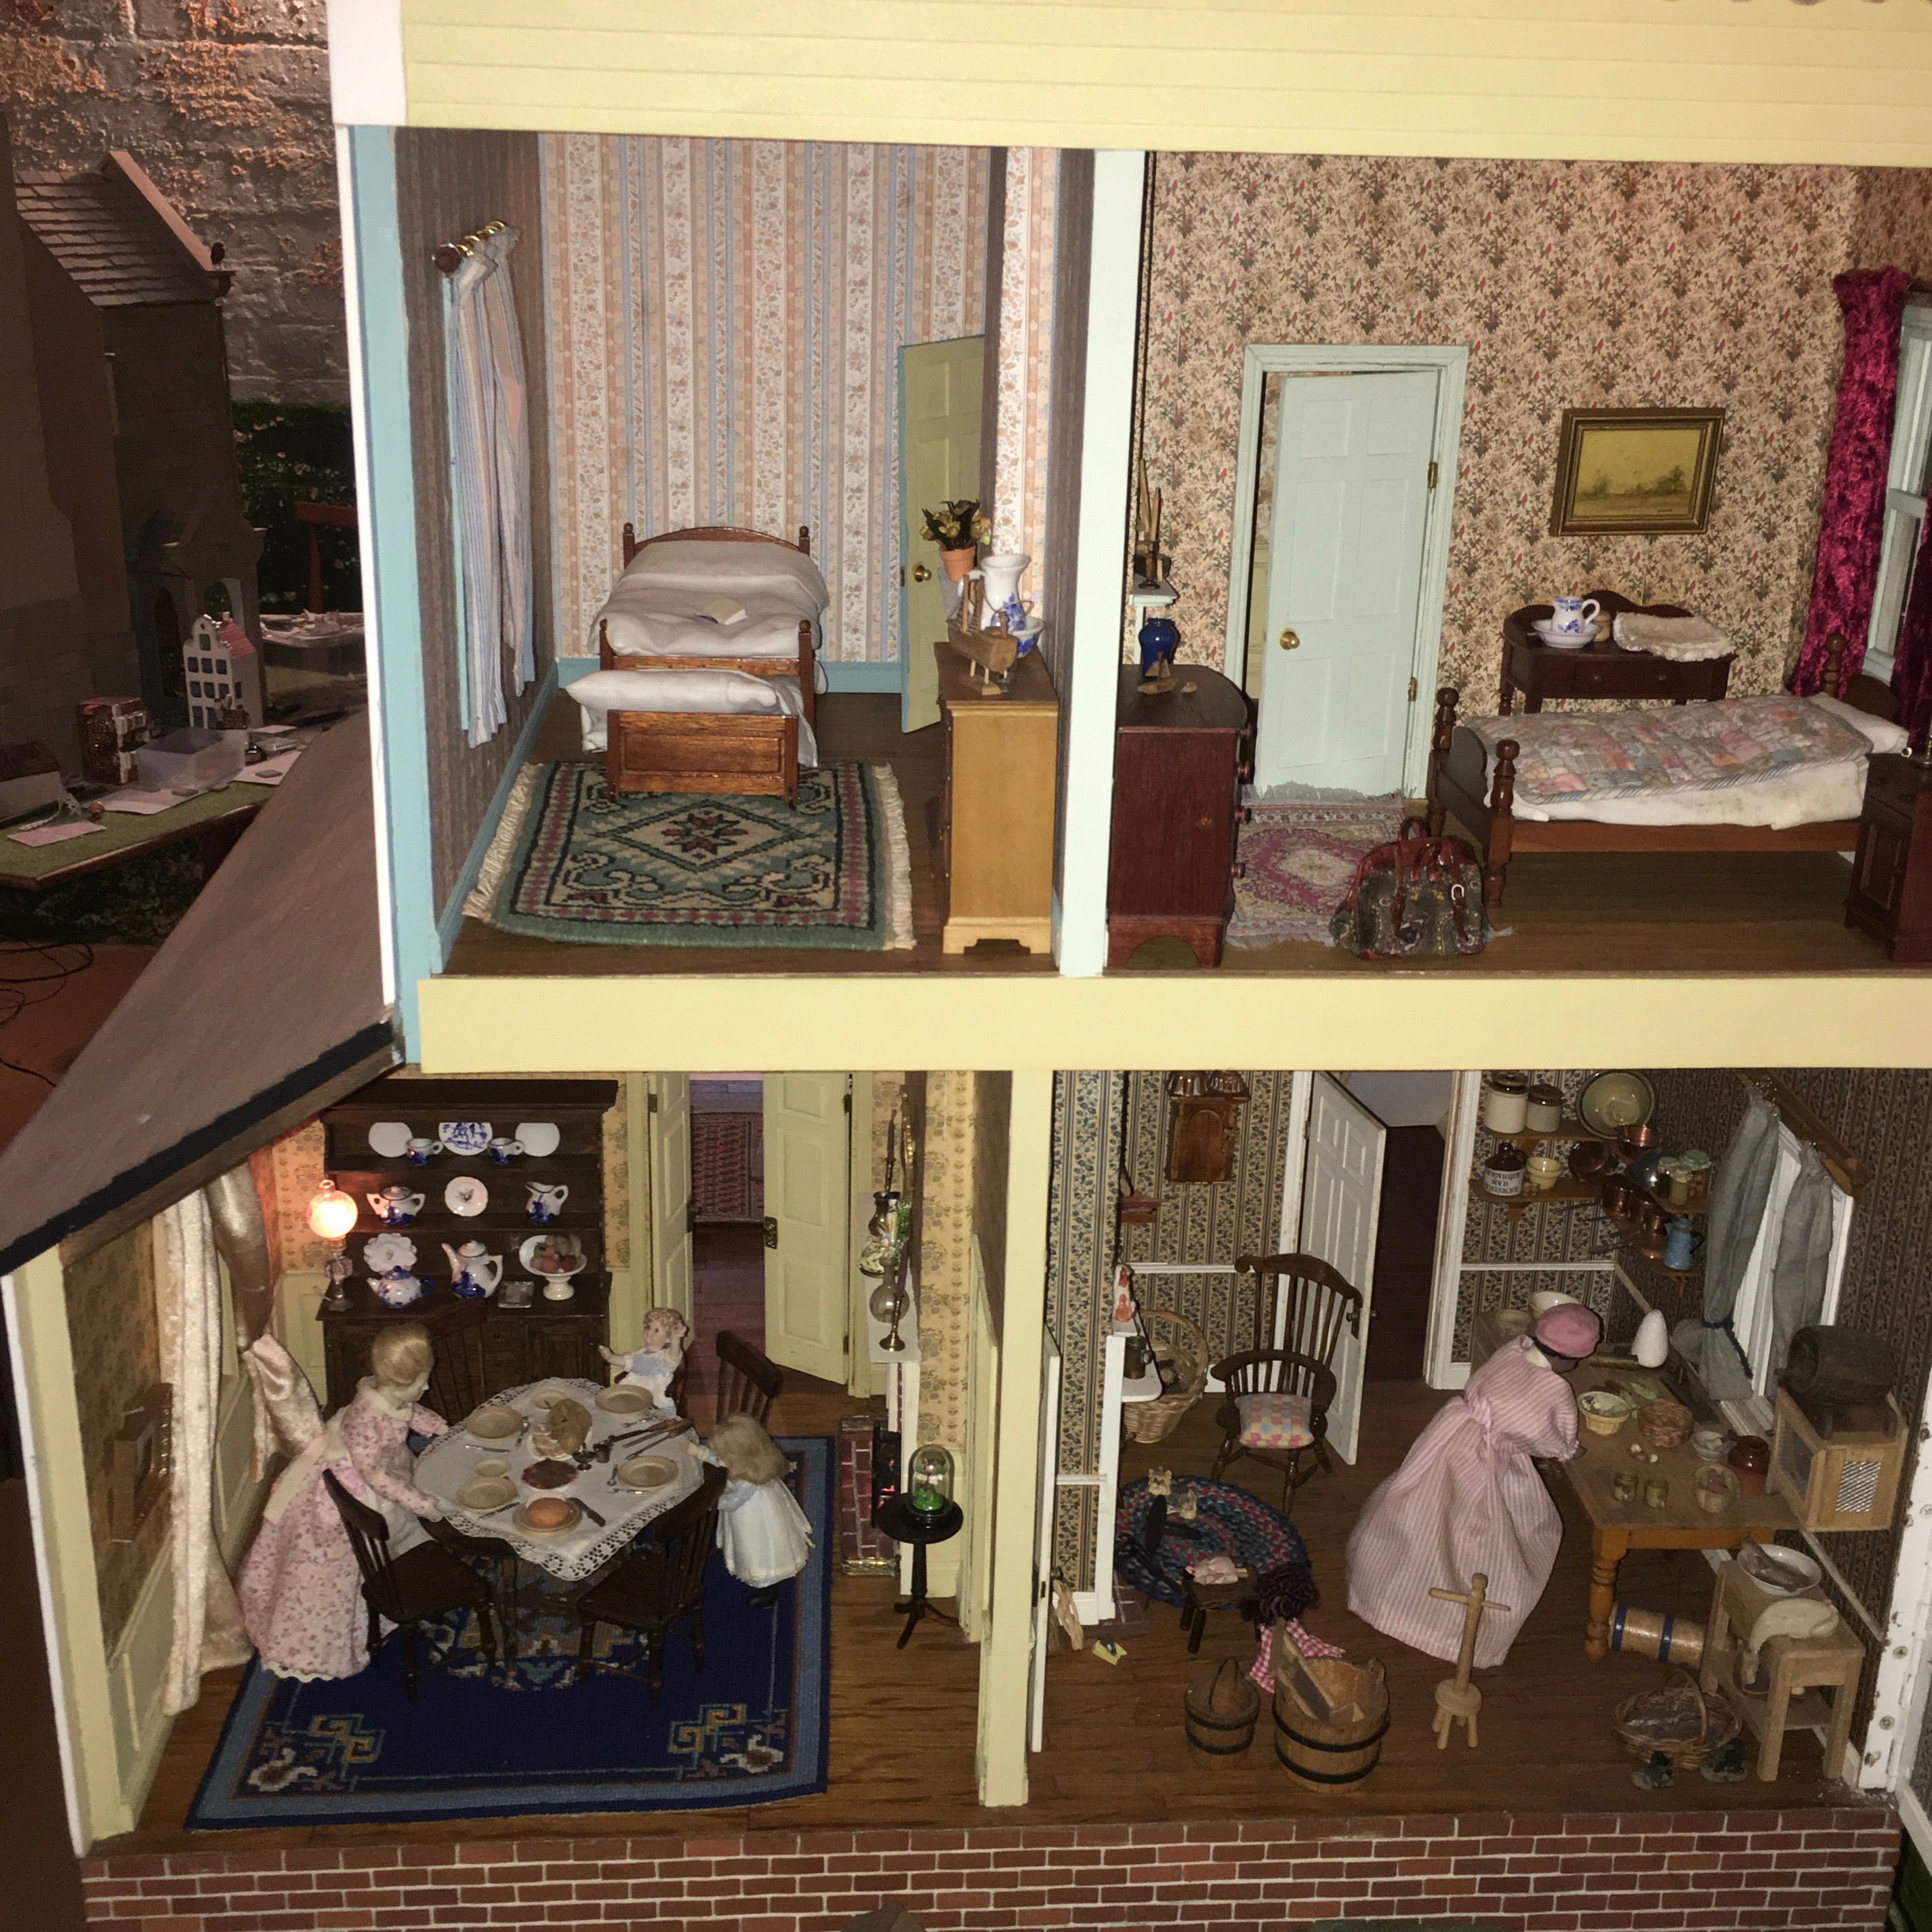 Part of the interior of the American house that Cliff builds from kit plans and a photos